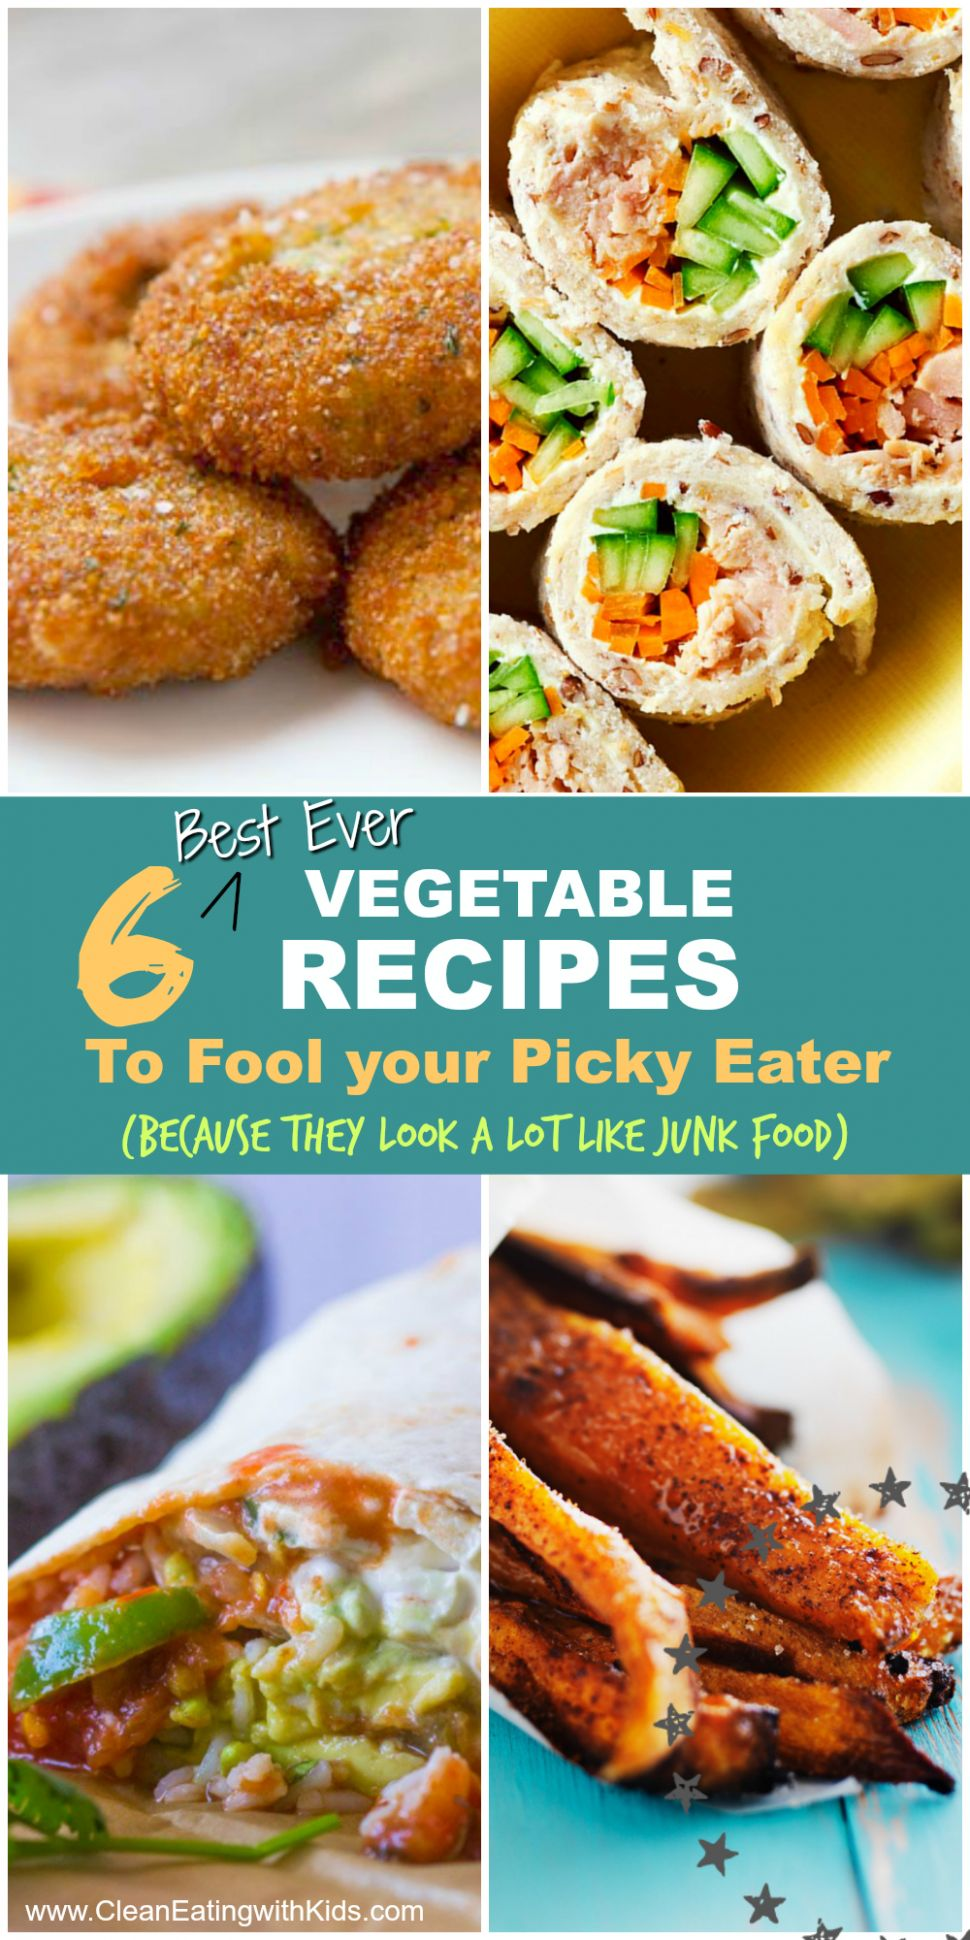 10 Best Vegetable Recipes to Fool Your Picky Eater - Clean Eating ...